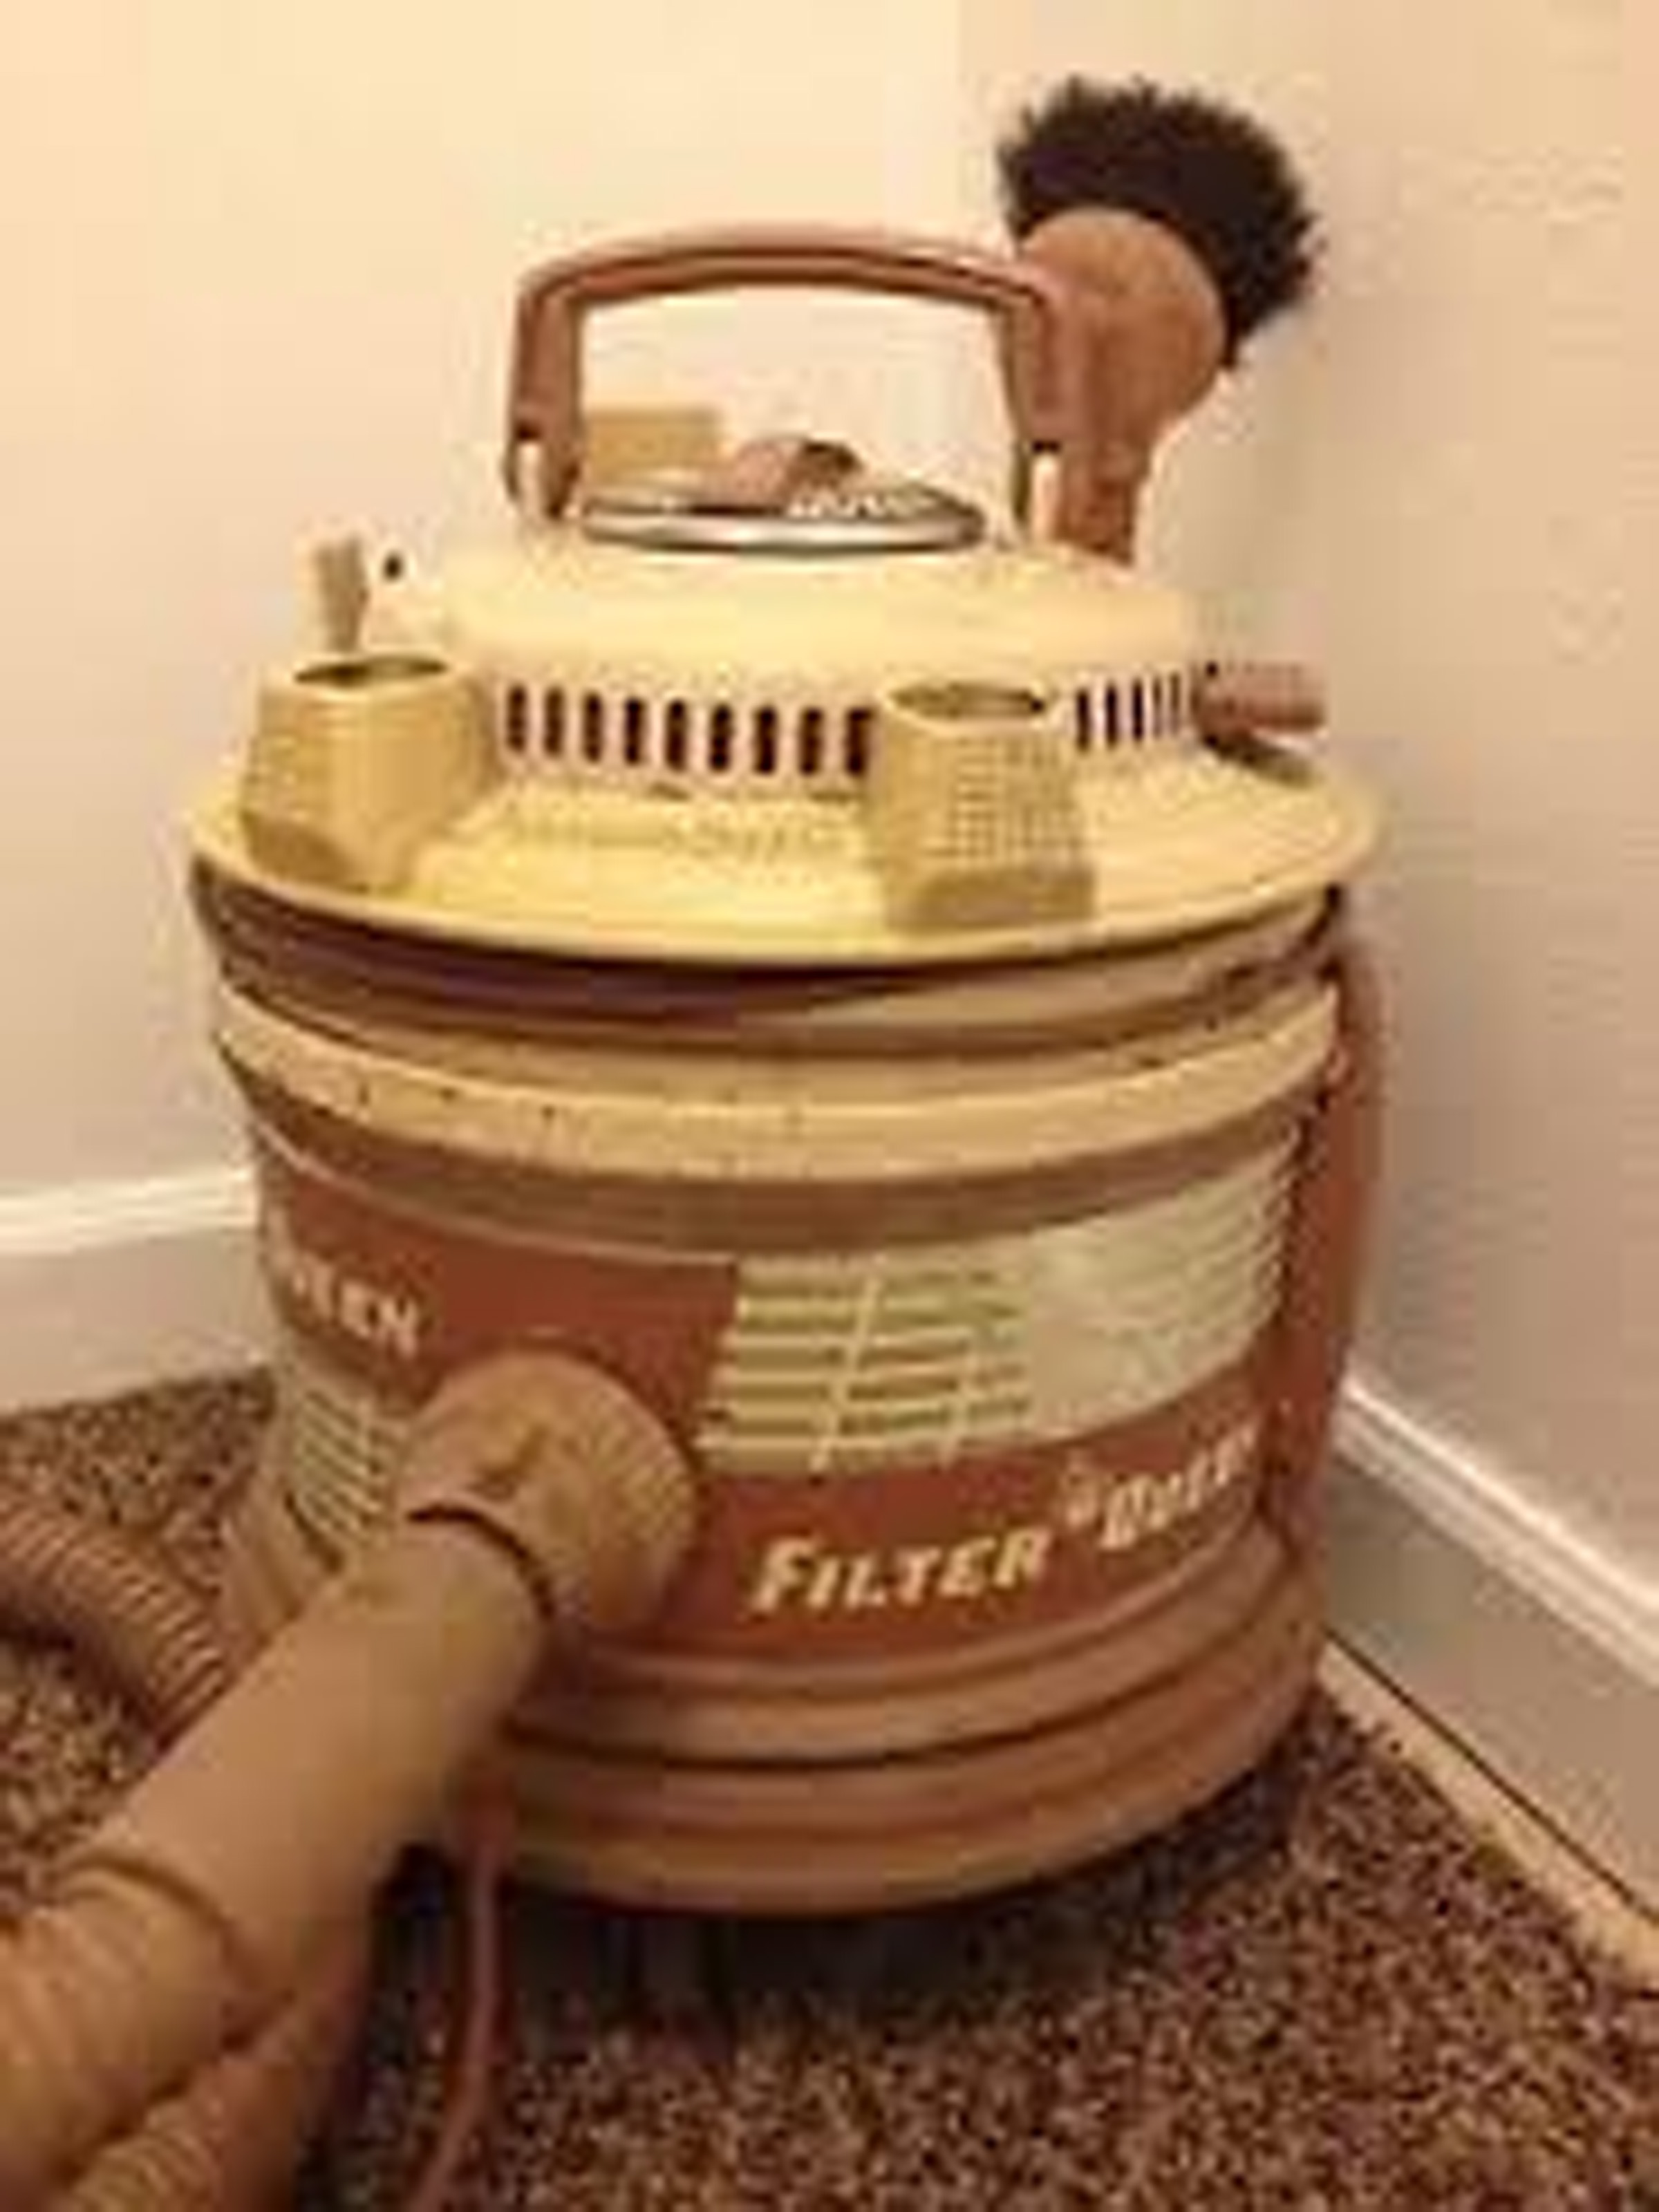 Example Of A 1970s Model Filter Queen Vacuum Cleaner Image Courtesy EBay